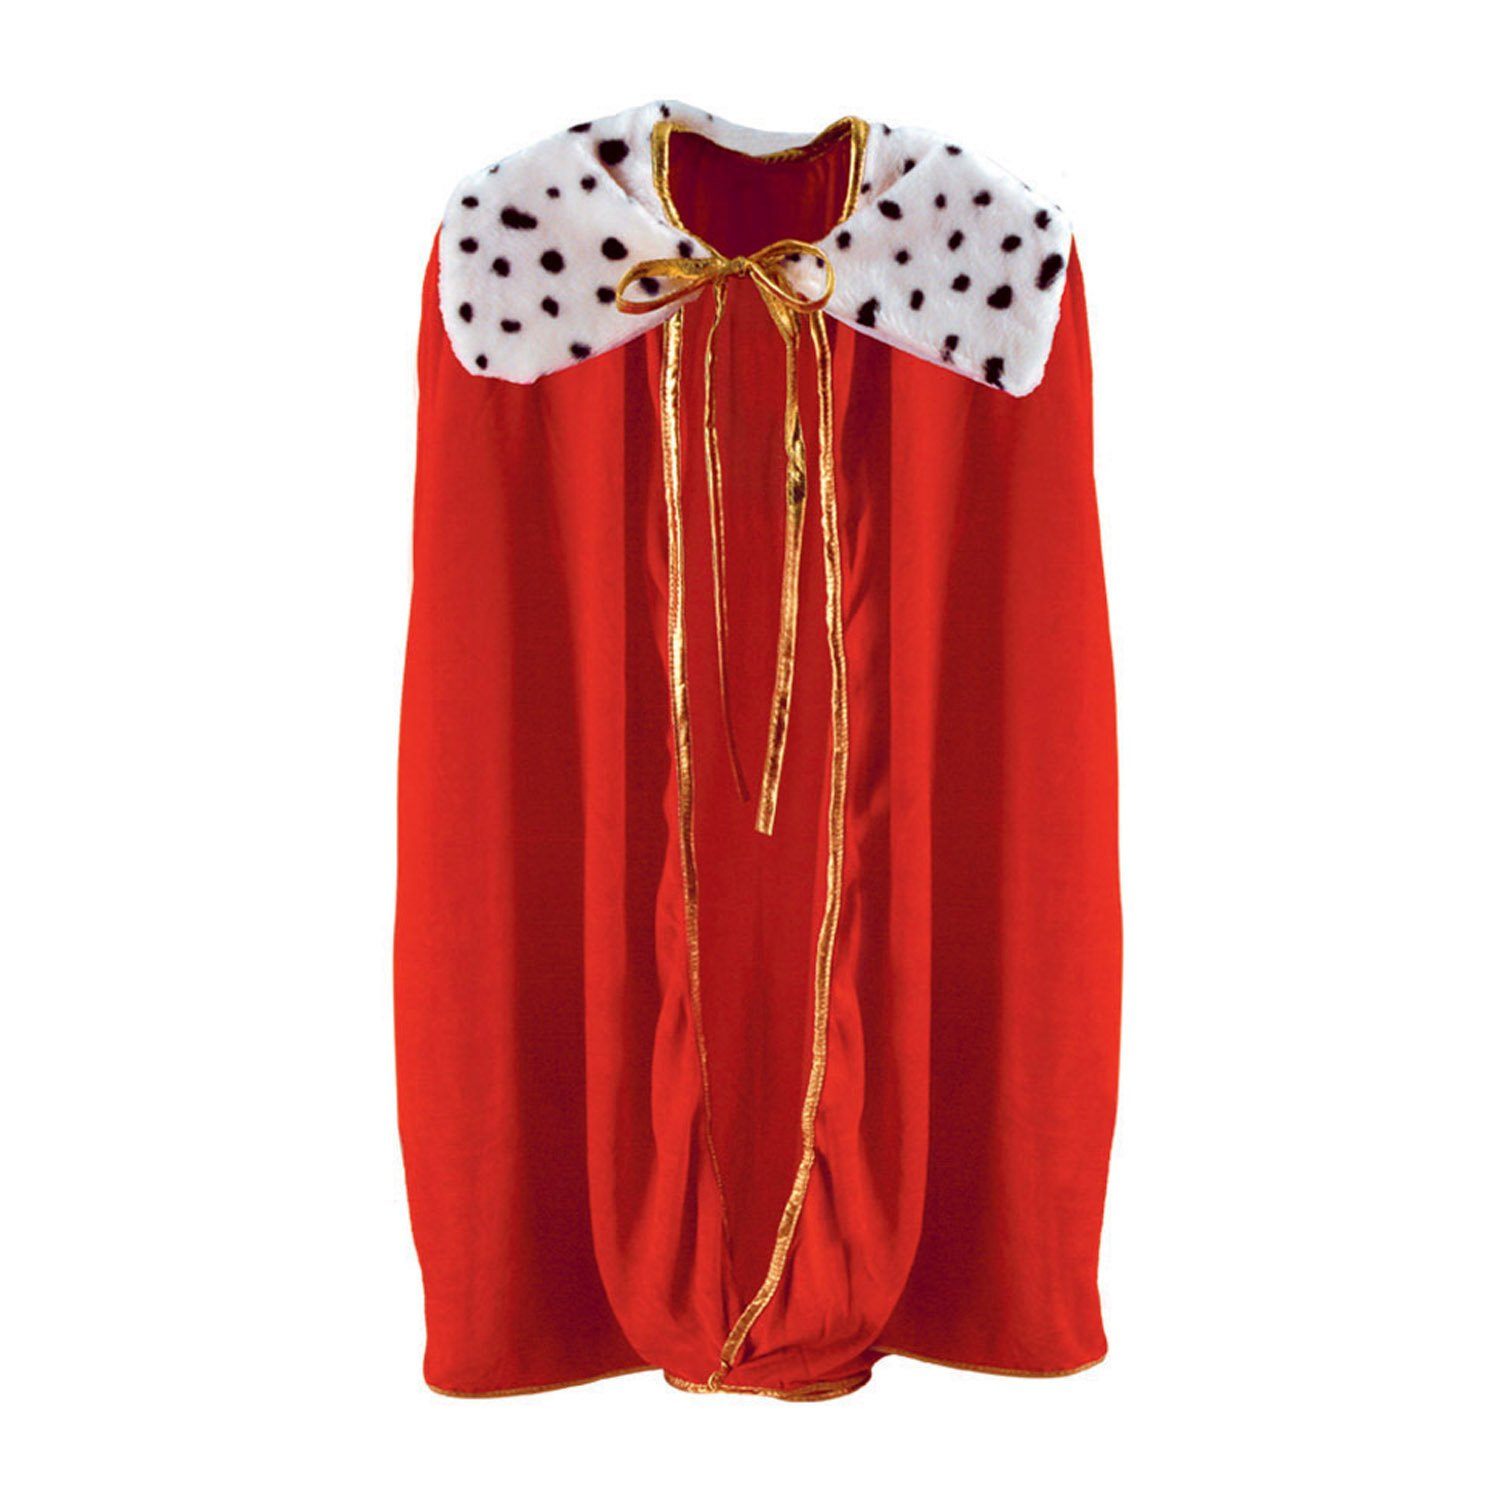 Child King/Queen Robe (red) Party Accessory (1 count) (1/Pkg) The Beistle Company 60254